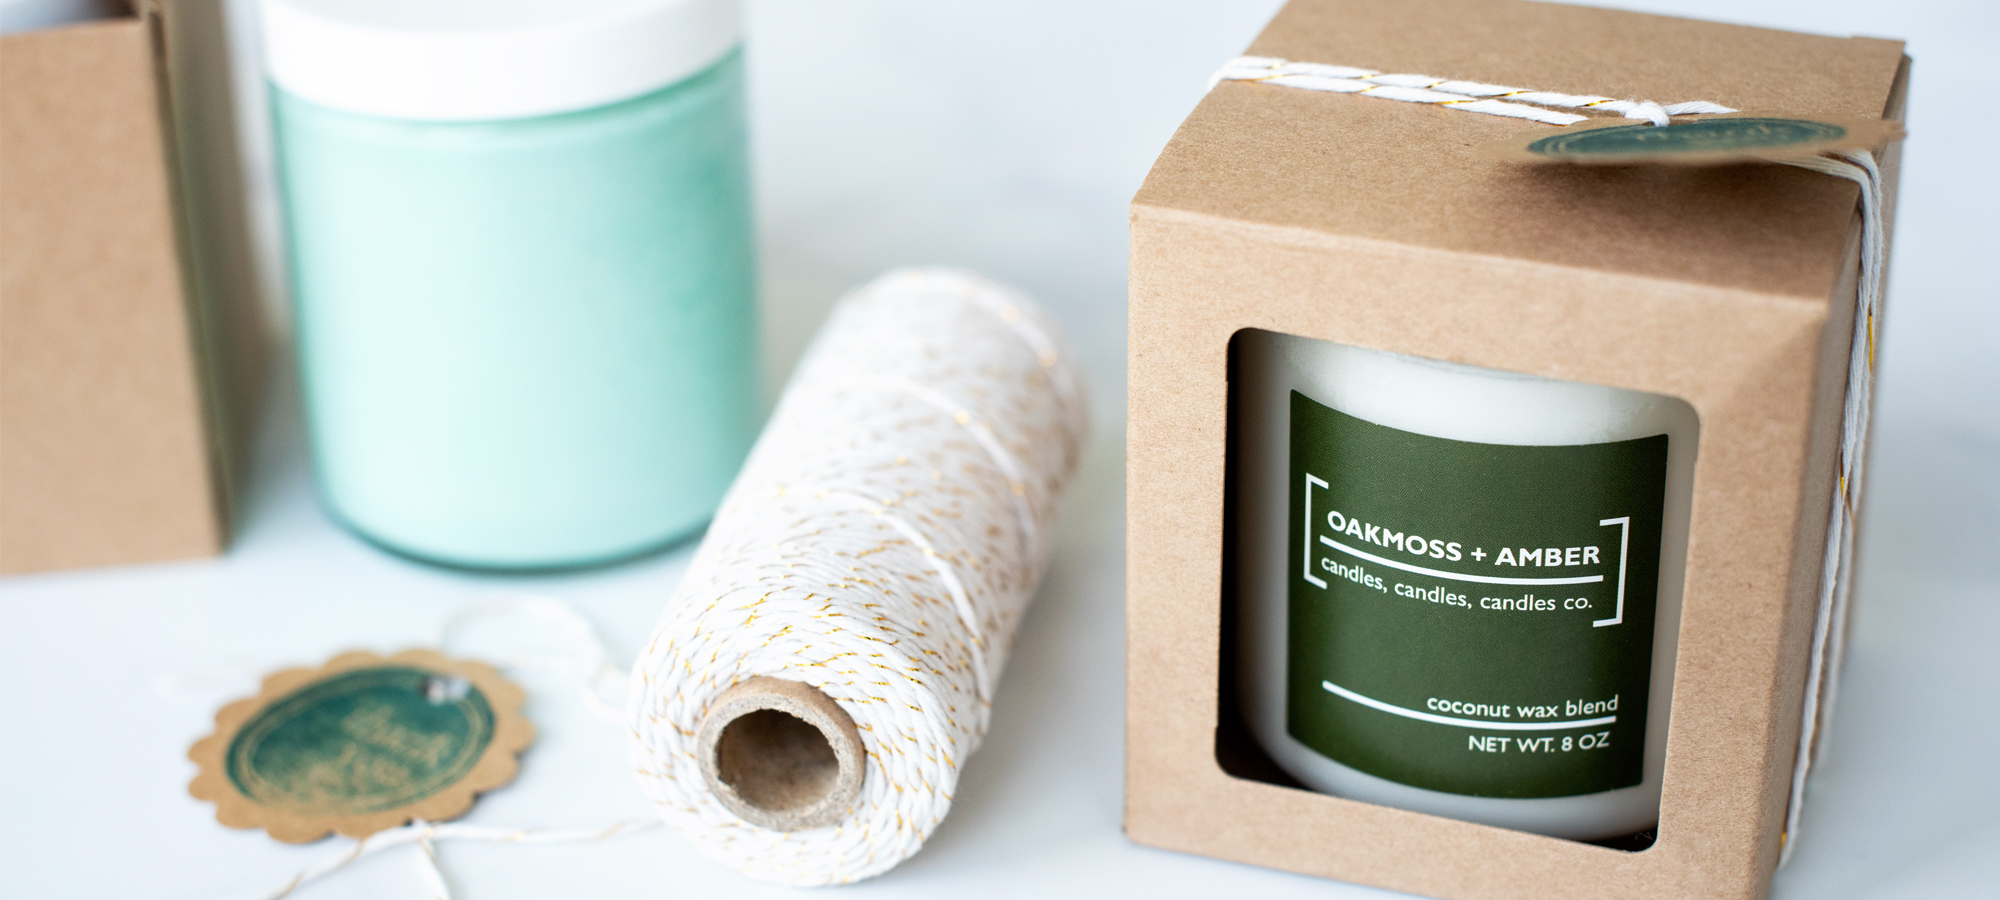 A packaged candle with baker's twine ready to sell on Etsy.